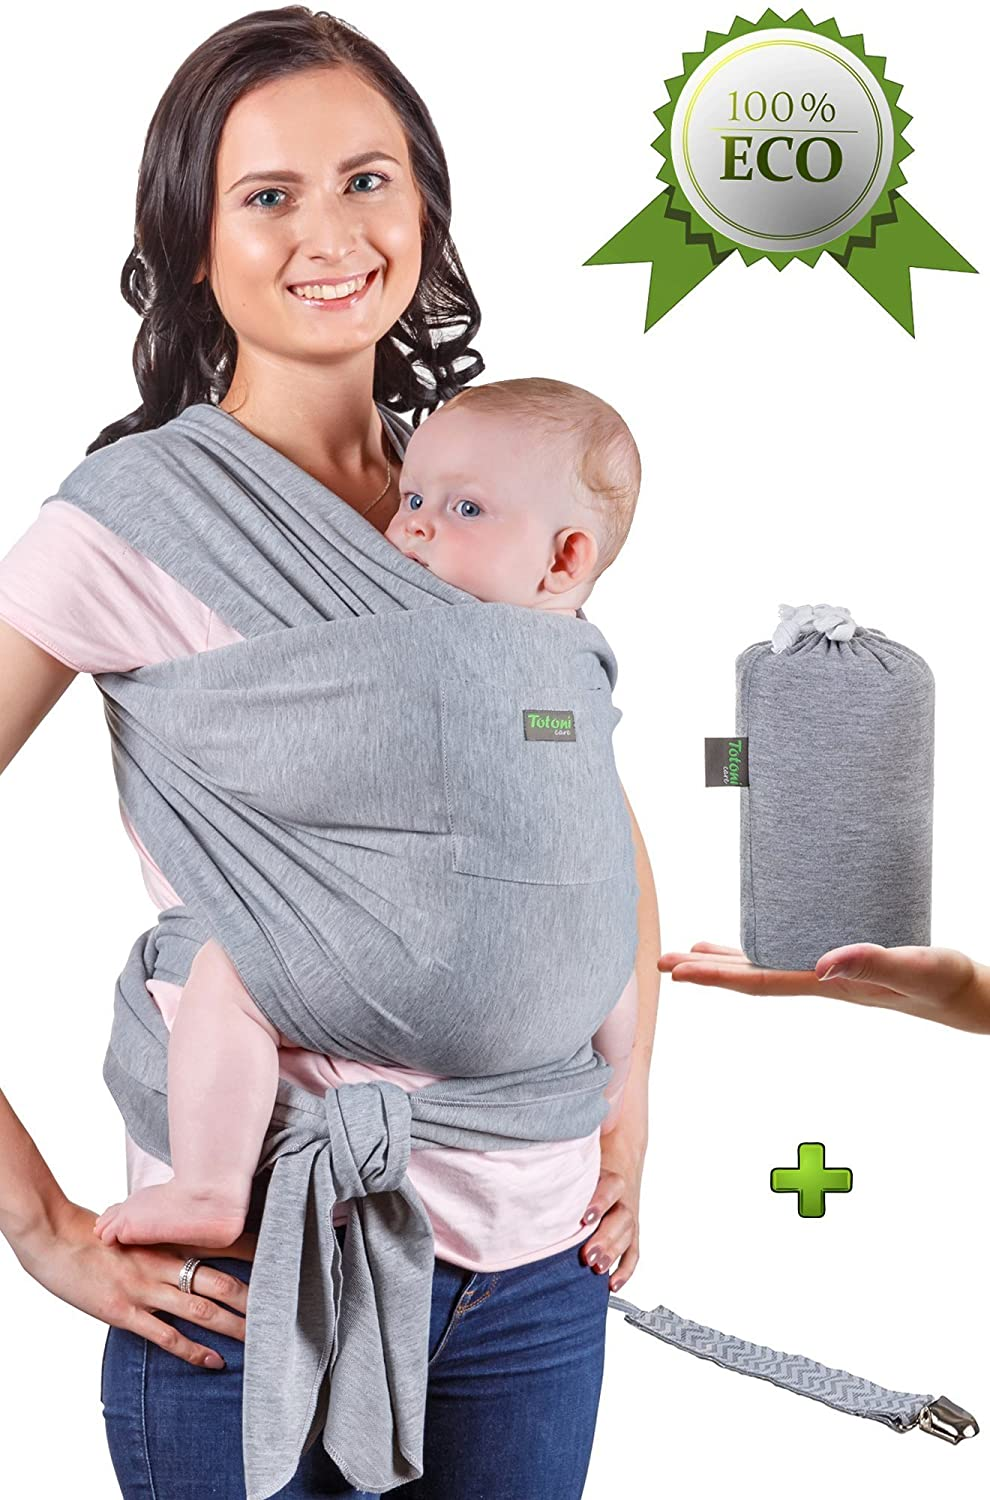 Baby Wrap Carrier - Baby Sling up to 35 lbs - Infant Wrap - Newborn Baby Carrier Sling - Baby Carrier Wrap and Sleepy Wrap for Toddler - Breastfeeding Sling - Perfect Baby Gift Sling - Organic Cotton Totoni care G-1